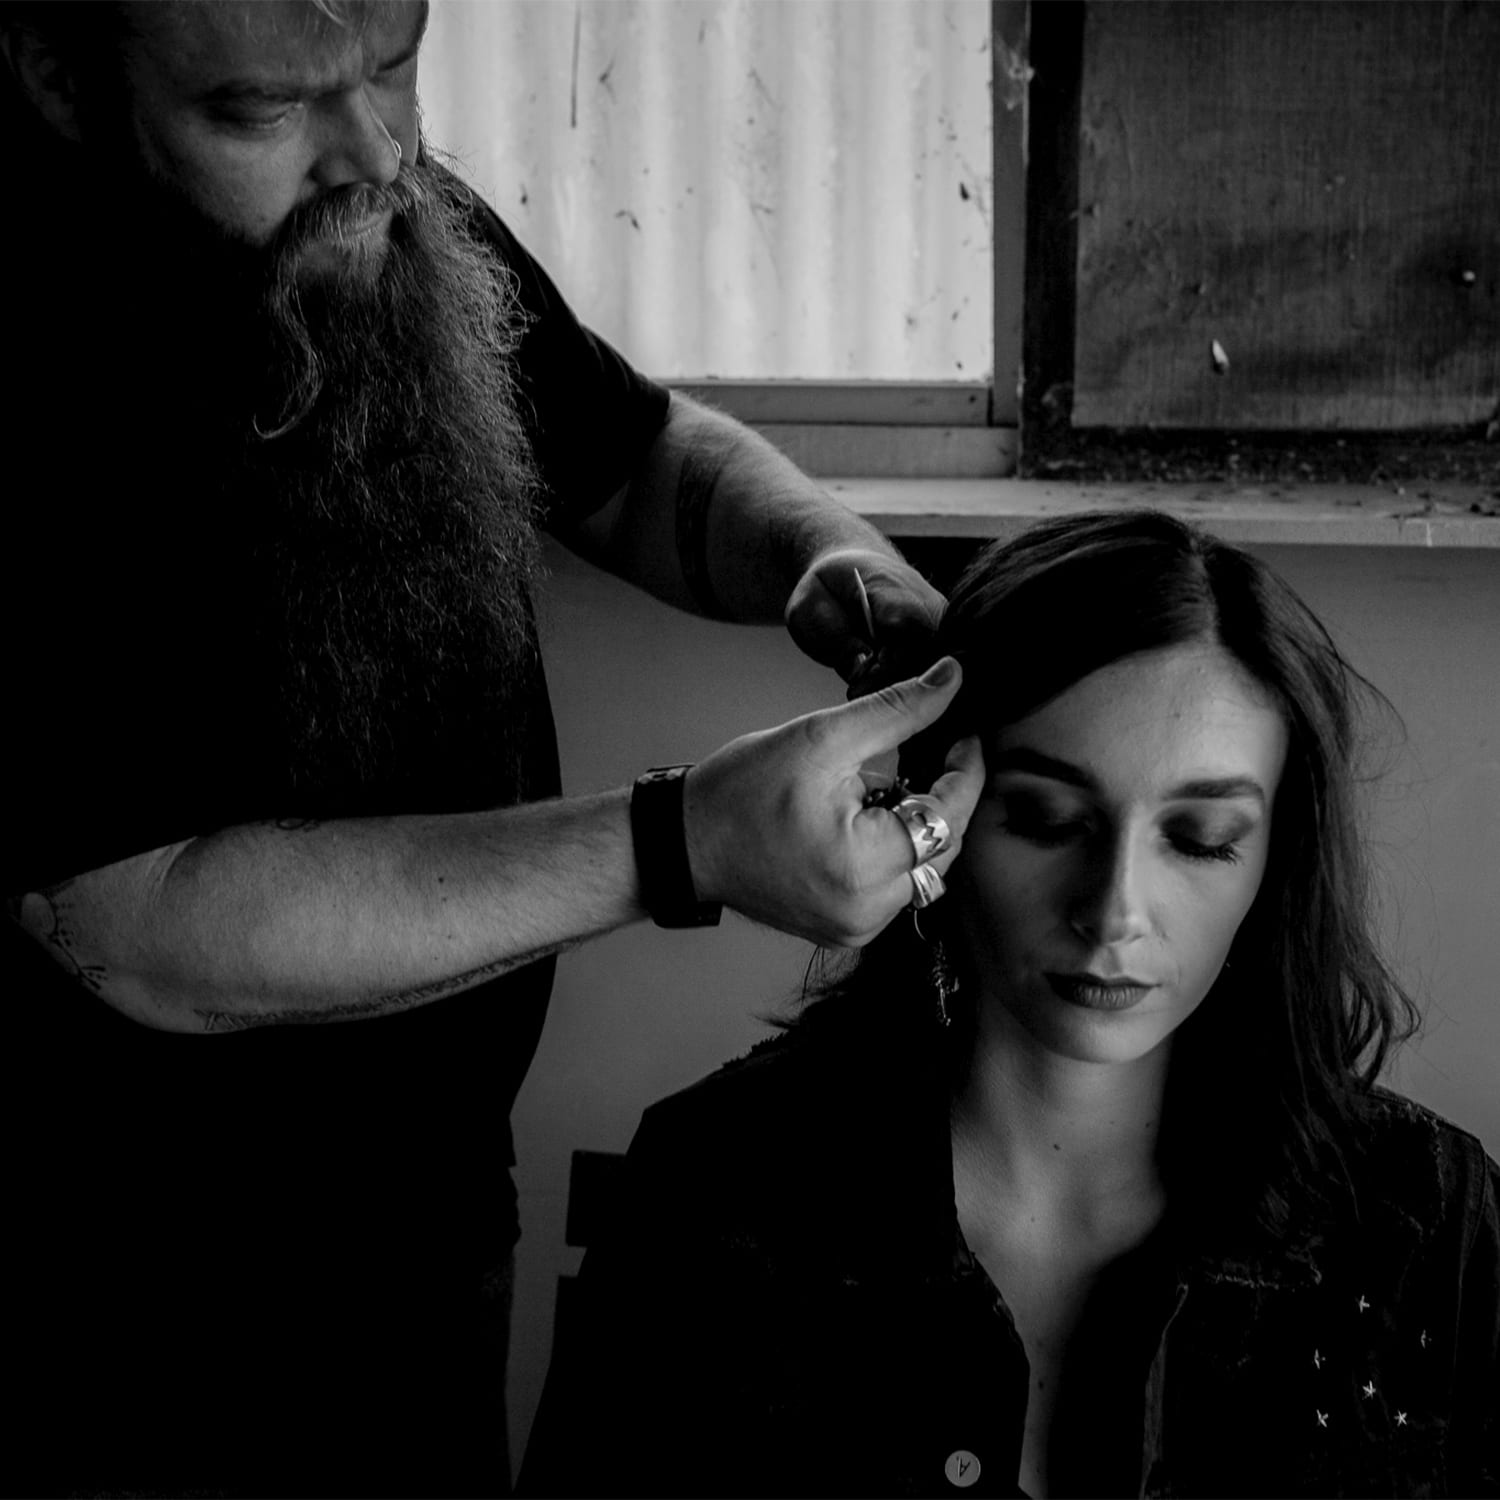 a man works on a young woman's hair as she is sitting